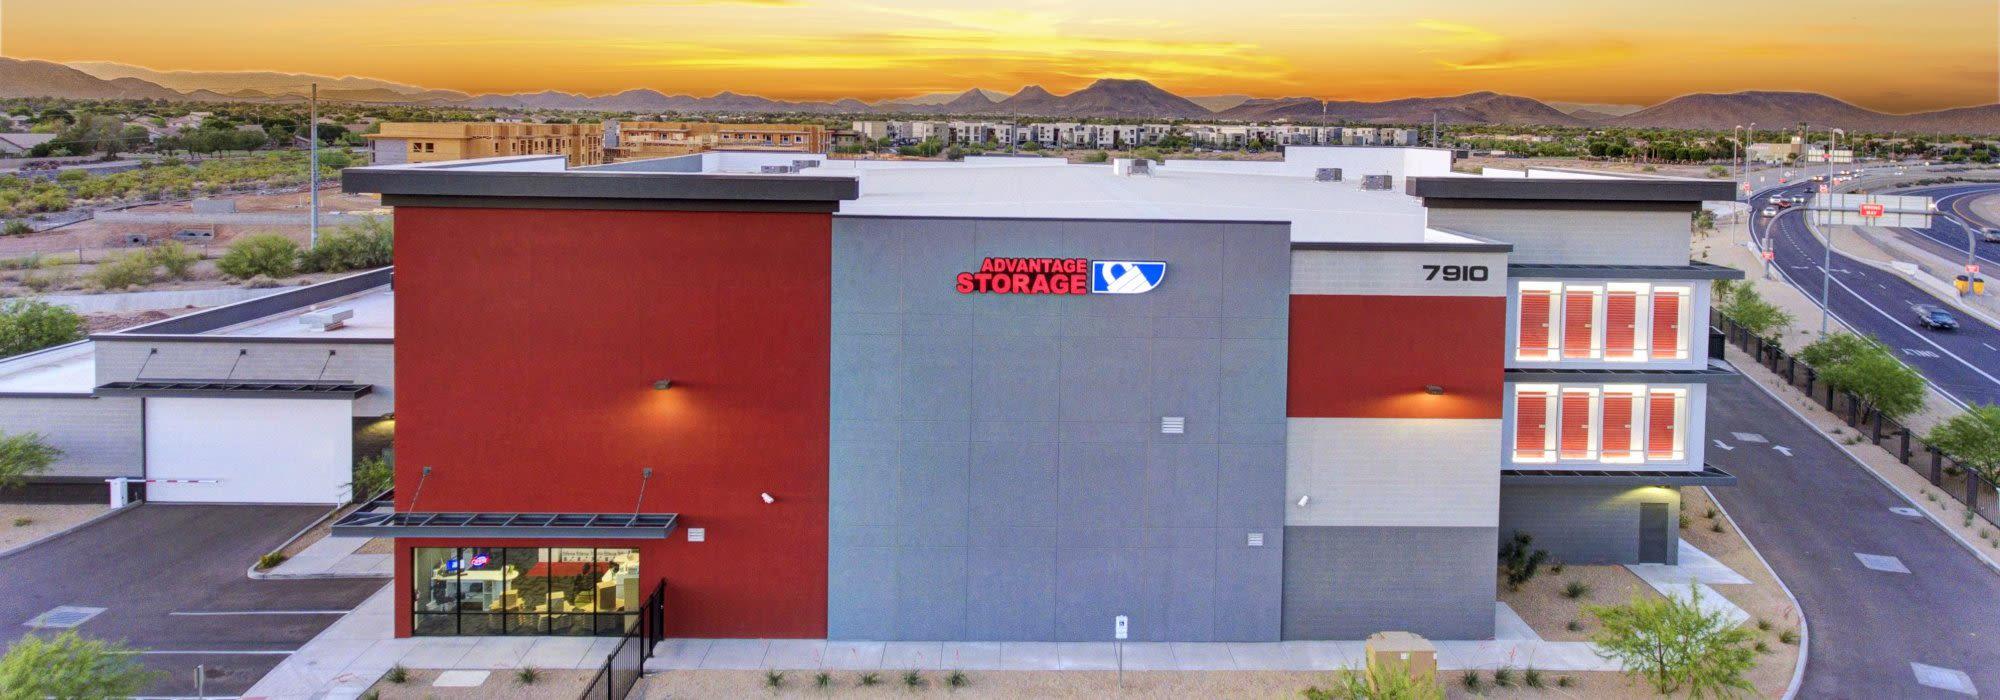 Self storage in Glendale AZ